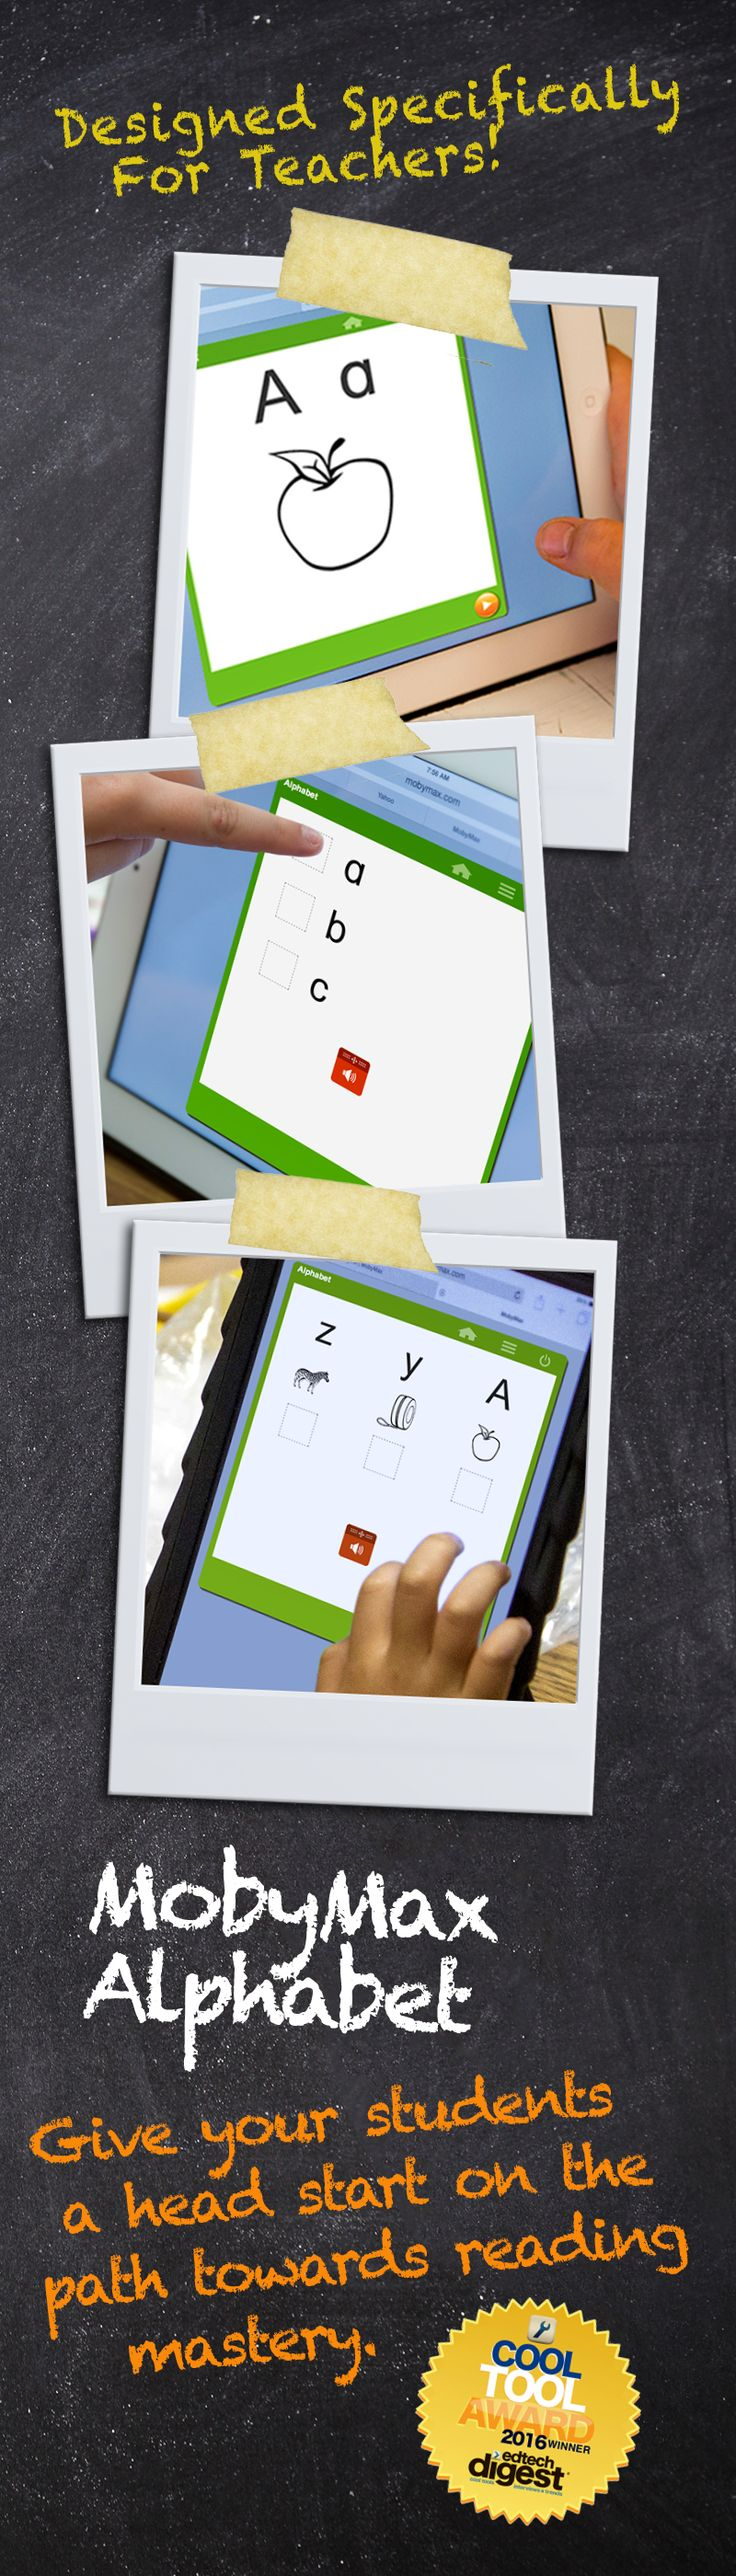 MobyMax Alphabet gives your students a head start on the path towards reading mastery. Using engaging, animated Teach Me lessons and interactive exercises, Moby Alphabet teaches students letter-name recognition for each uppercase and lowercase letter in the English alphabet. MobyMax is a FREE, complete curriculum for all K-8 subjects and specifically designed for teachers.